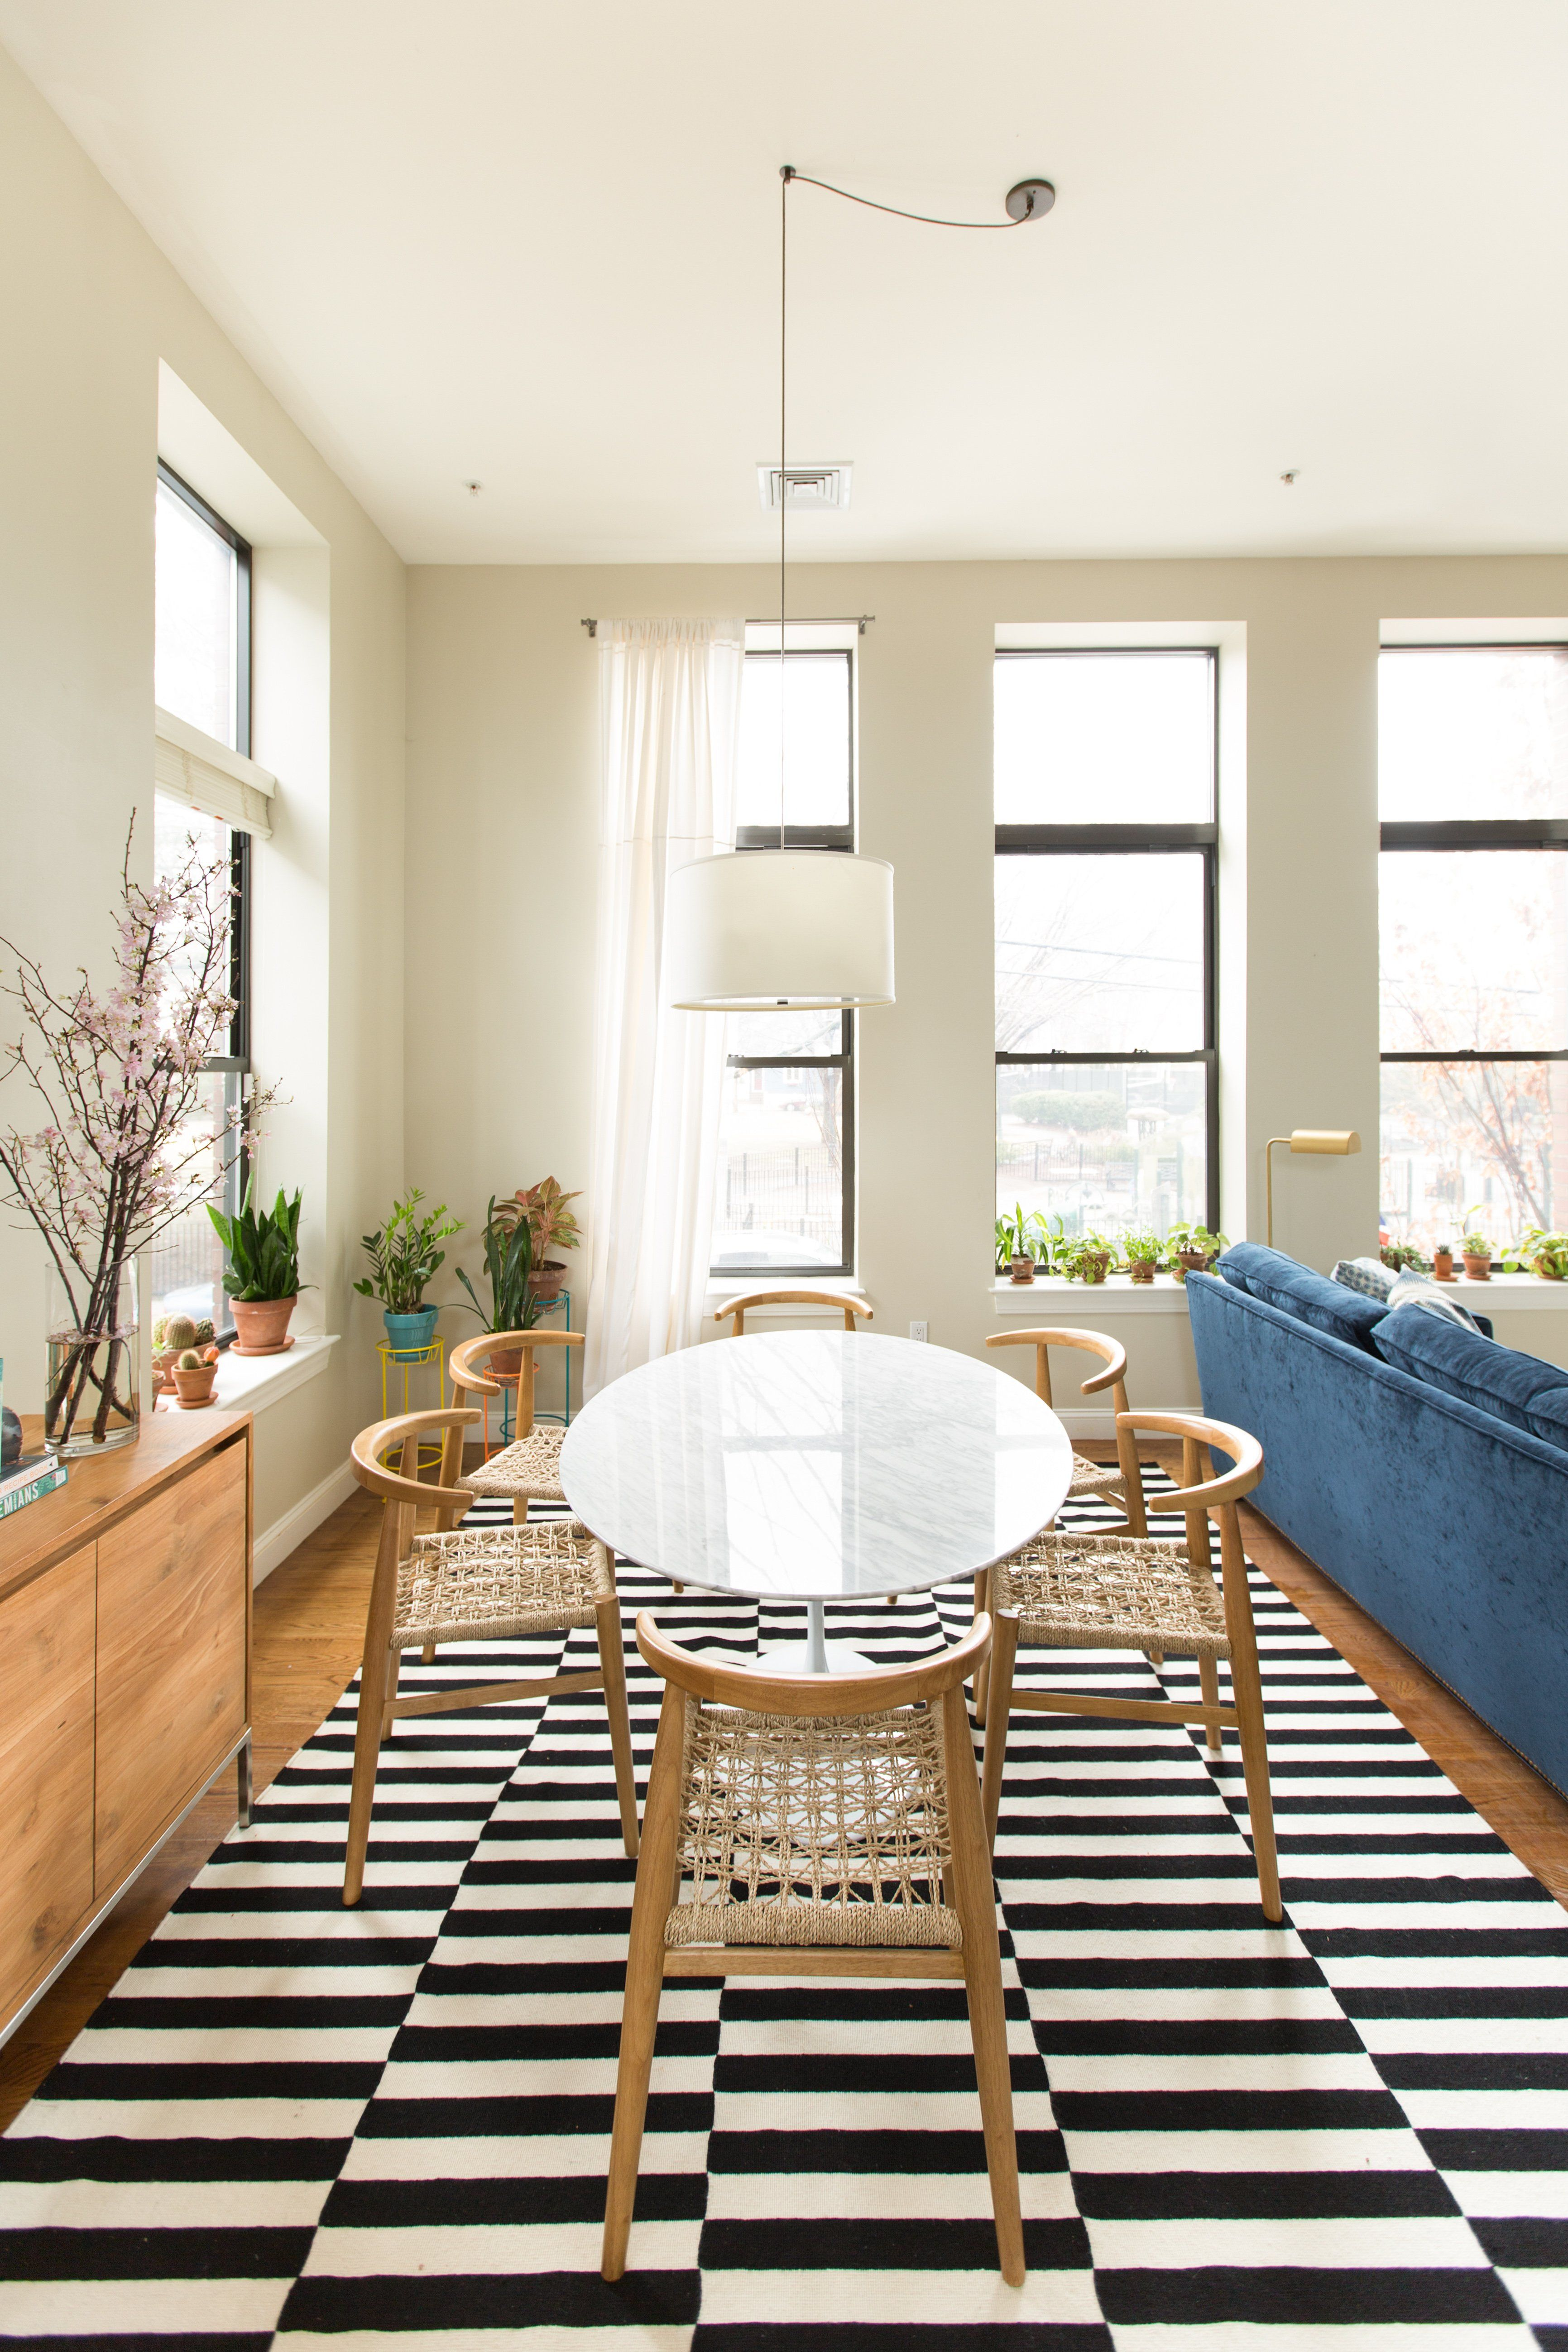 5 Kitchen And Living Room Design Rules You Should Always Fo